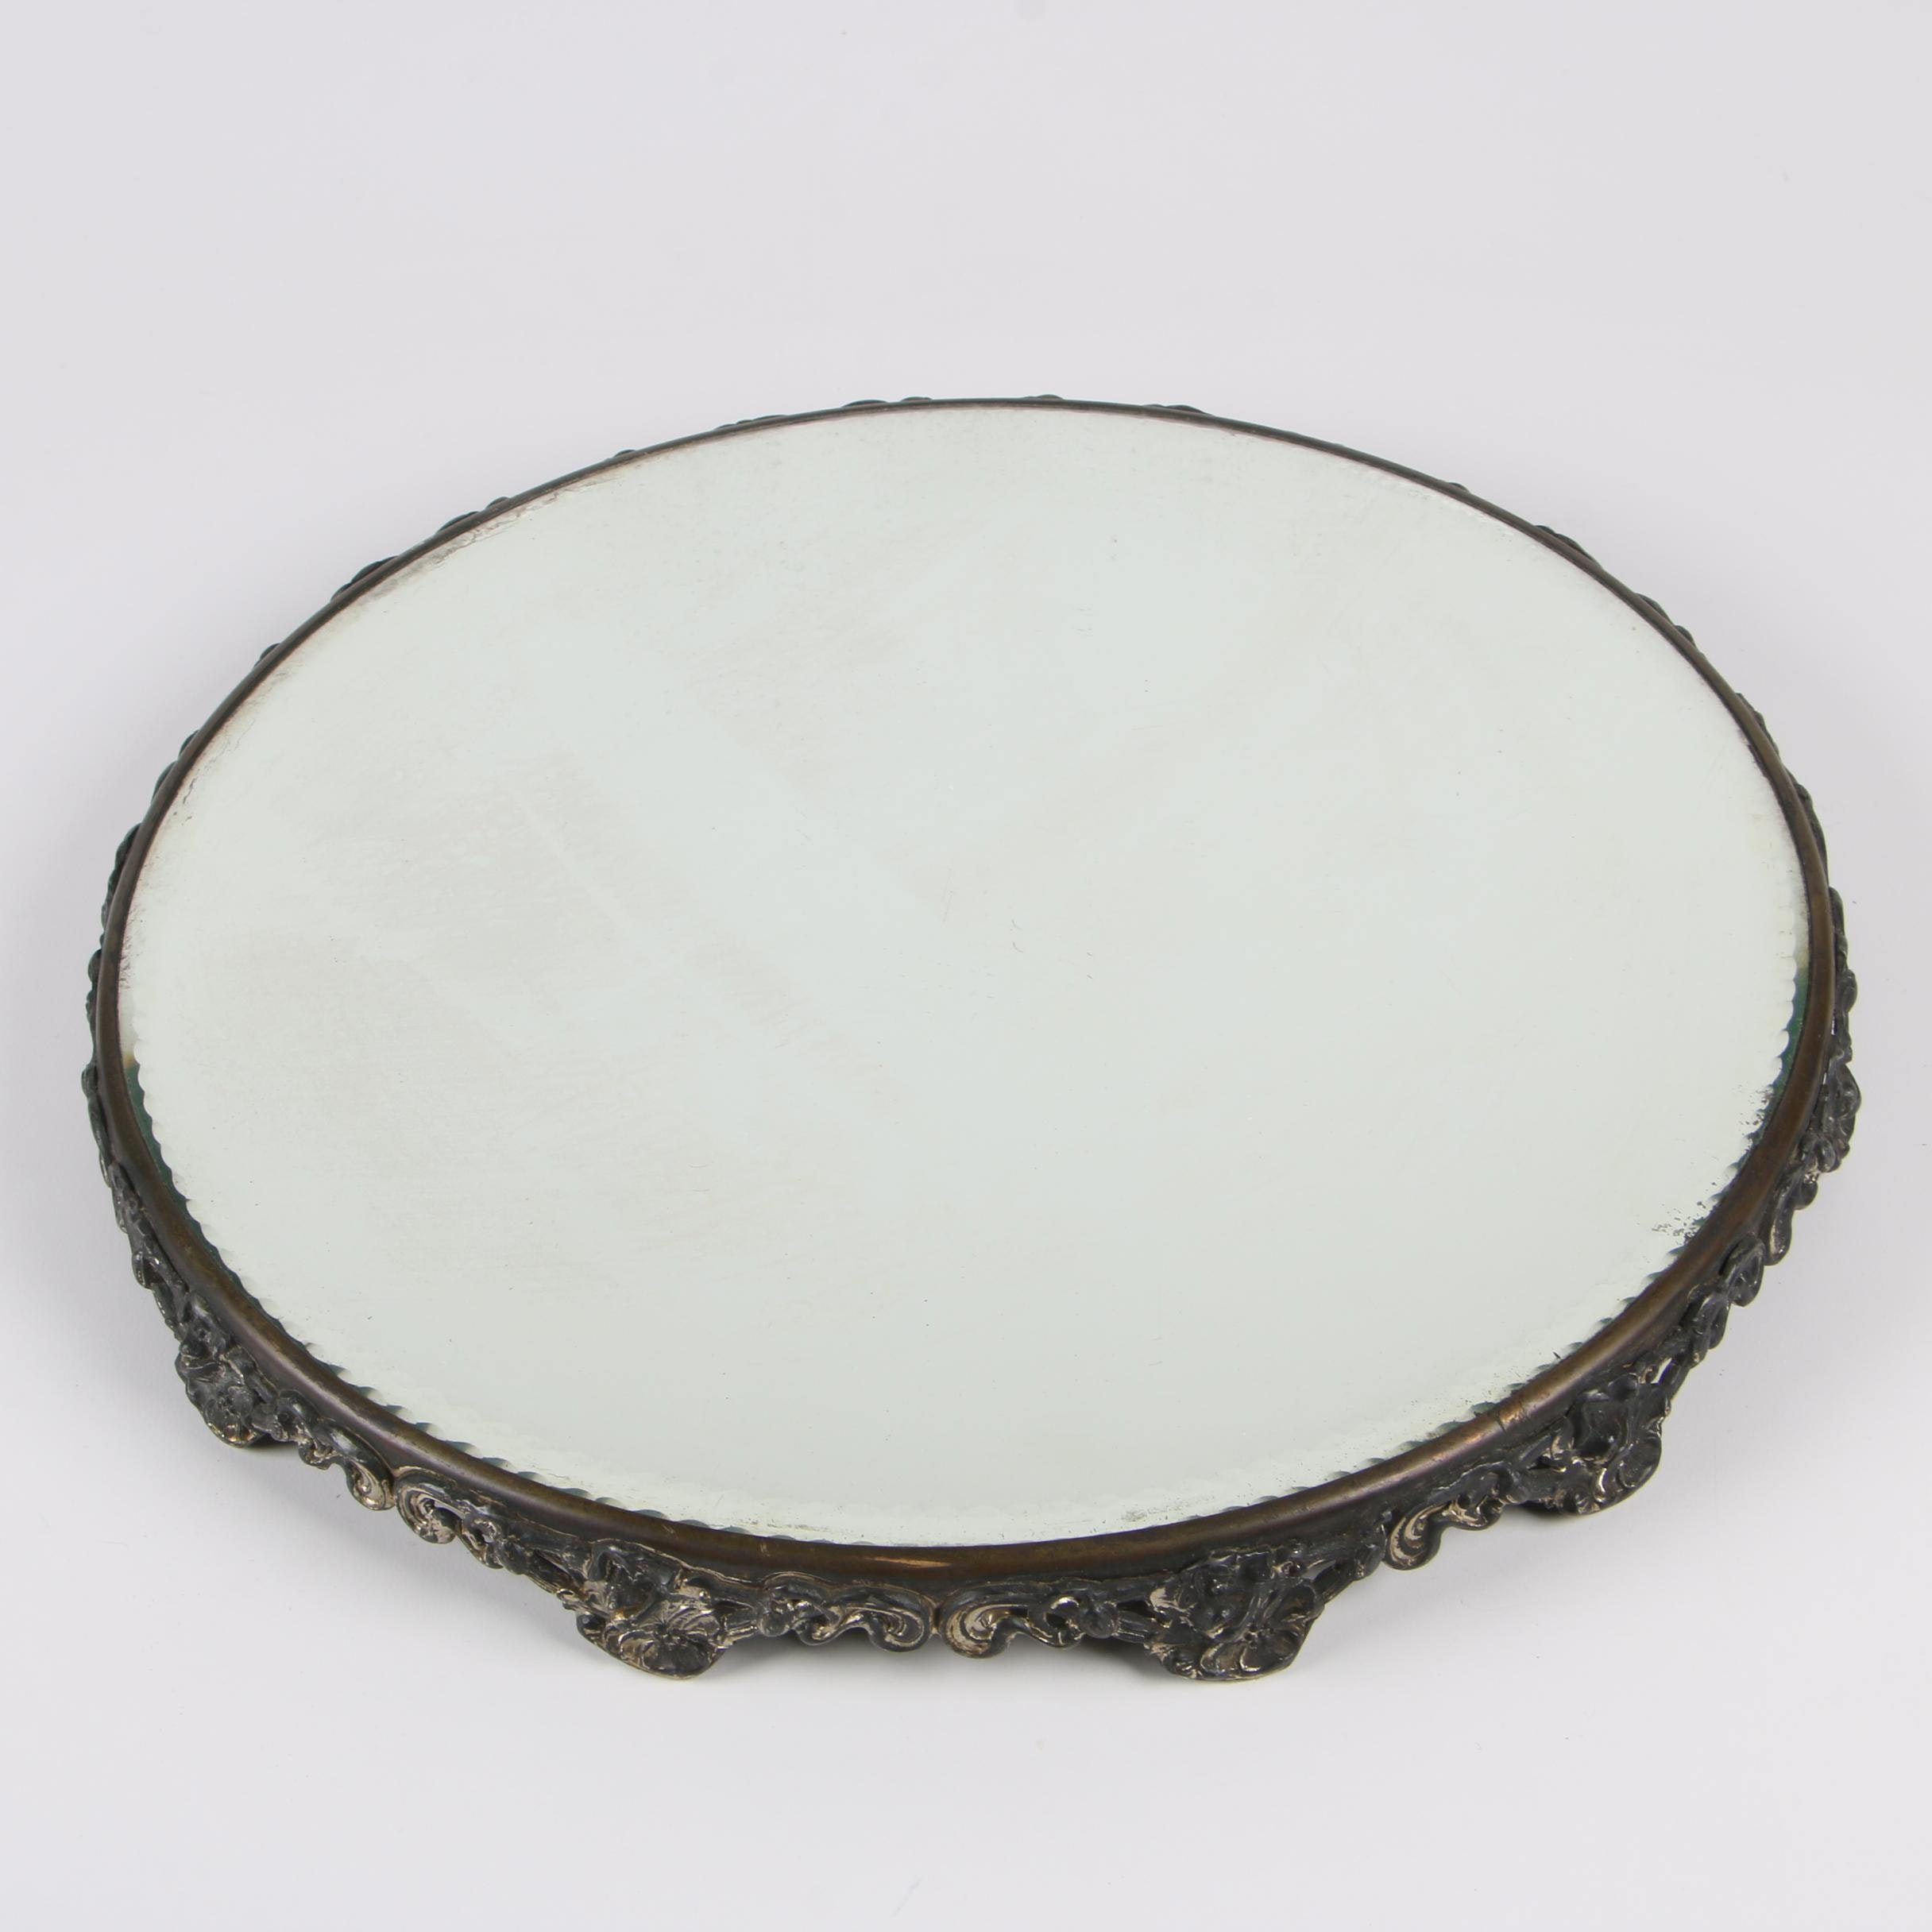 Victorian Style Silver Plate Mirrored Vanity Tray, Early 20th Century